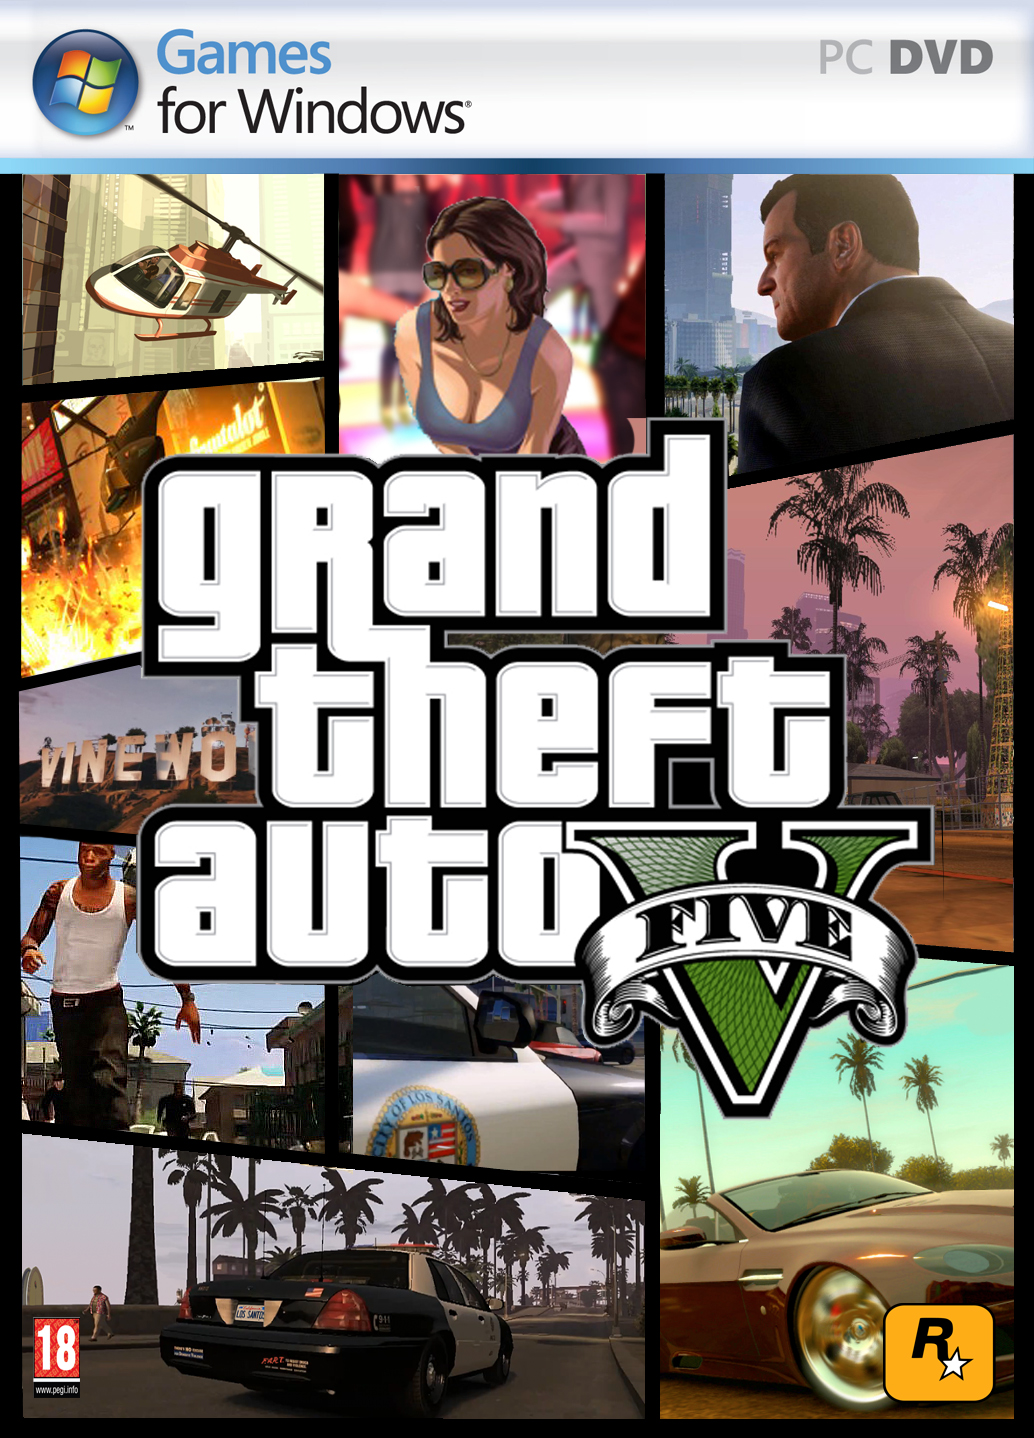 gta 5 pc torrent download skidrow